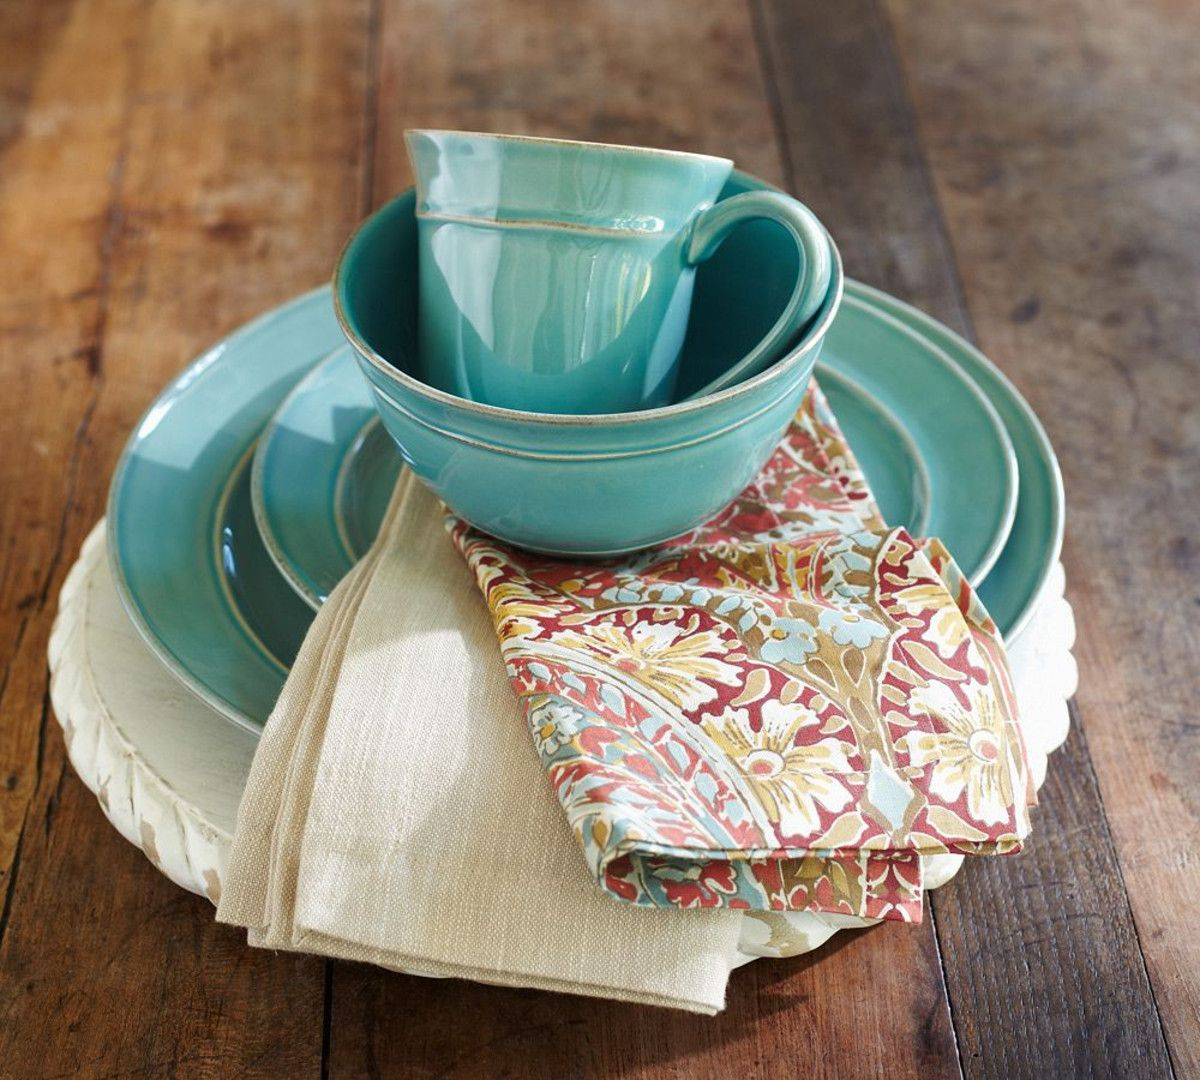 cambria dinnerware turquoise blue - Stoneware Dishes